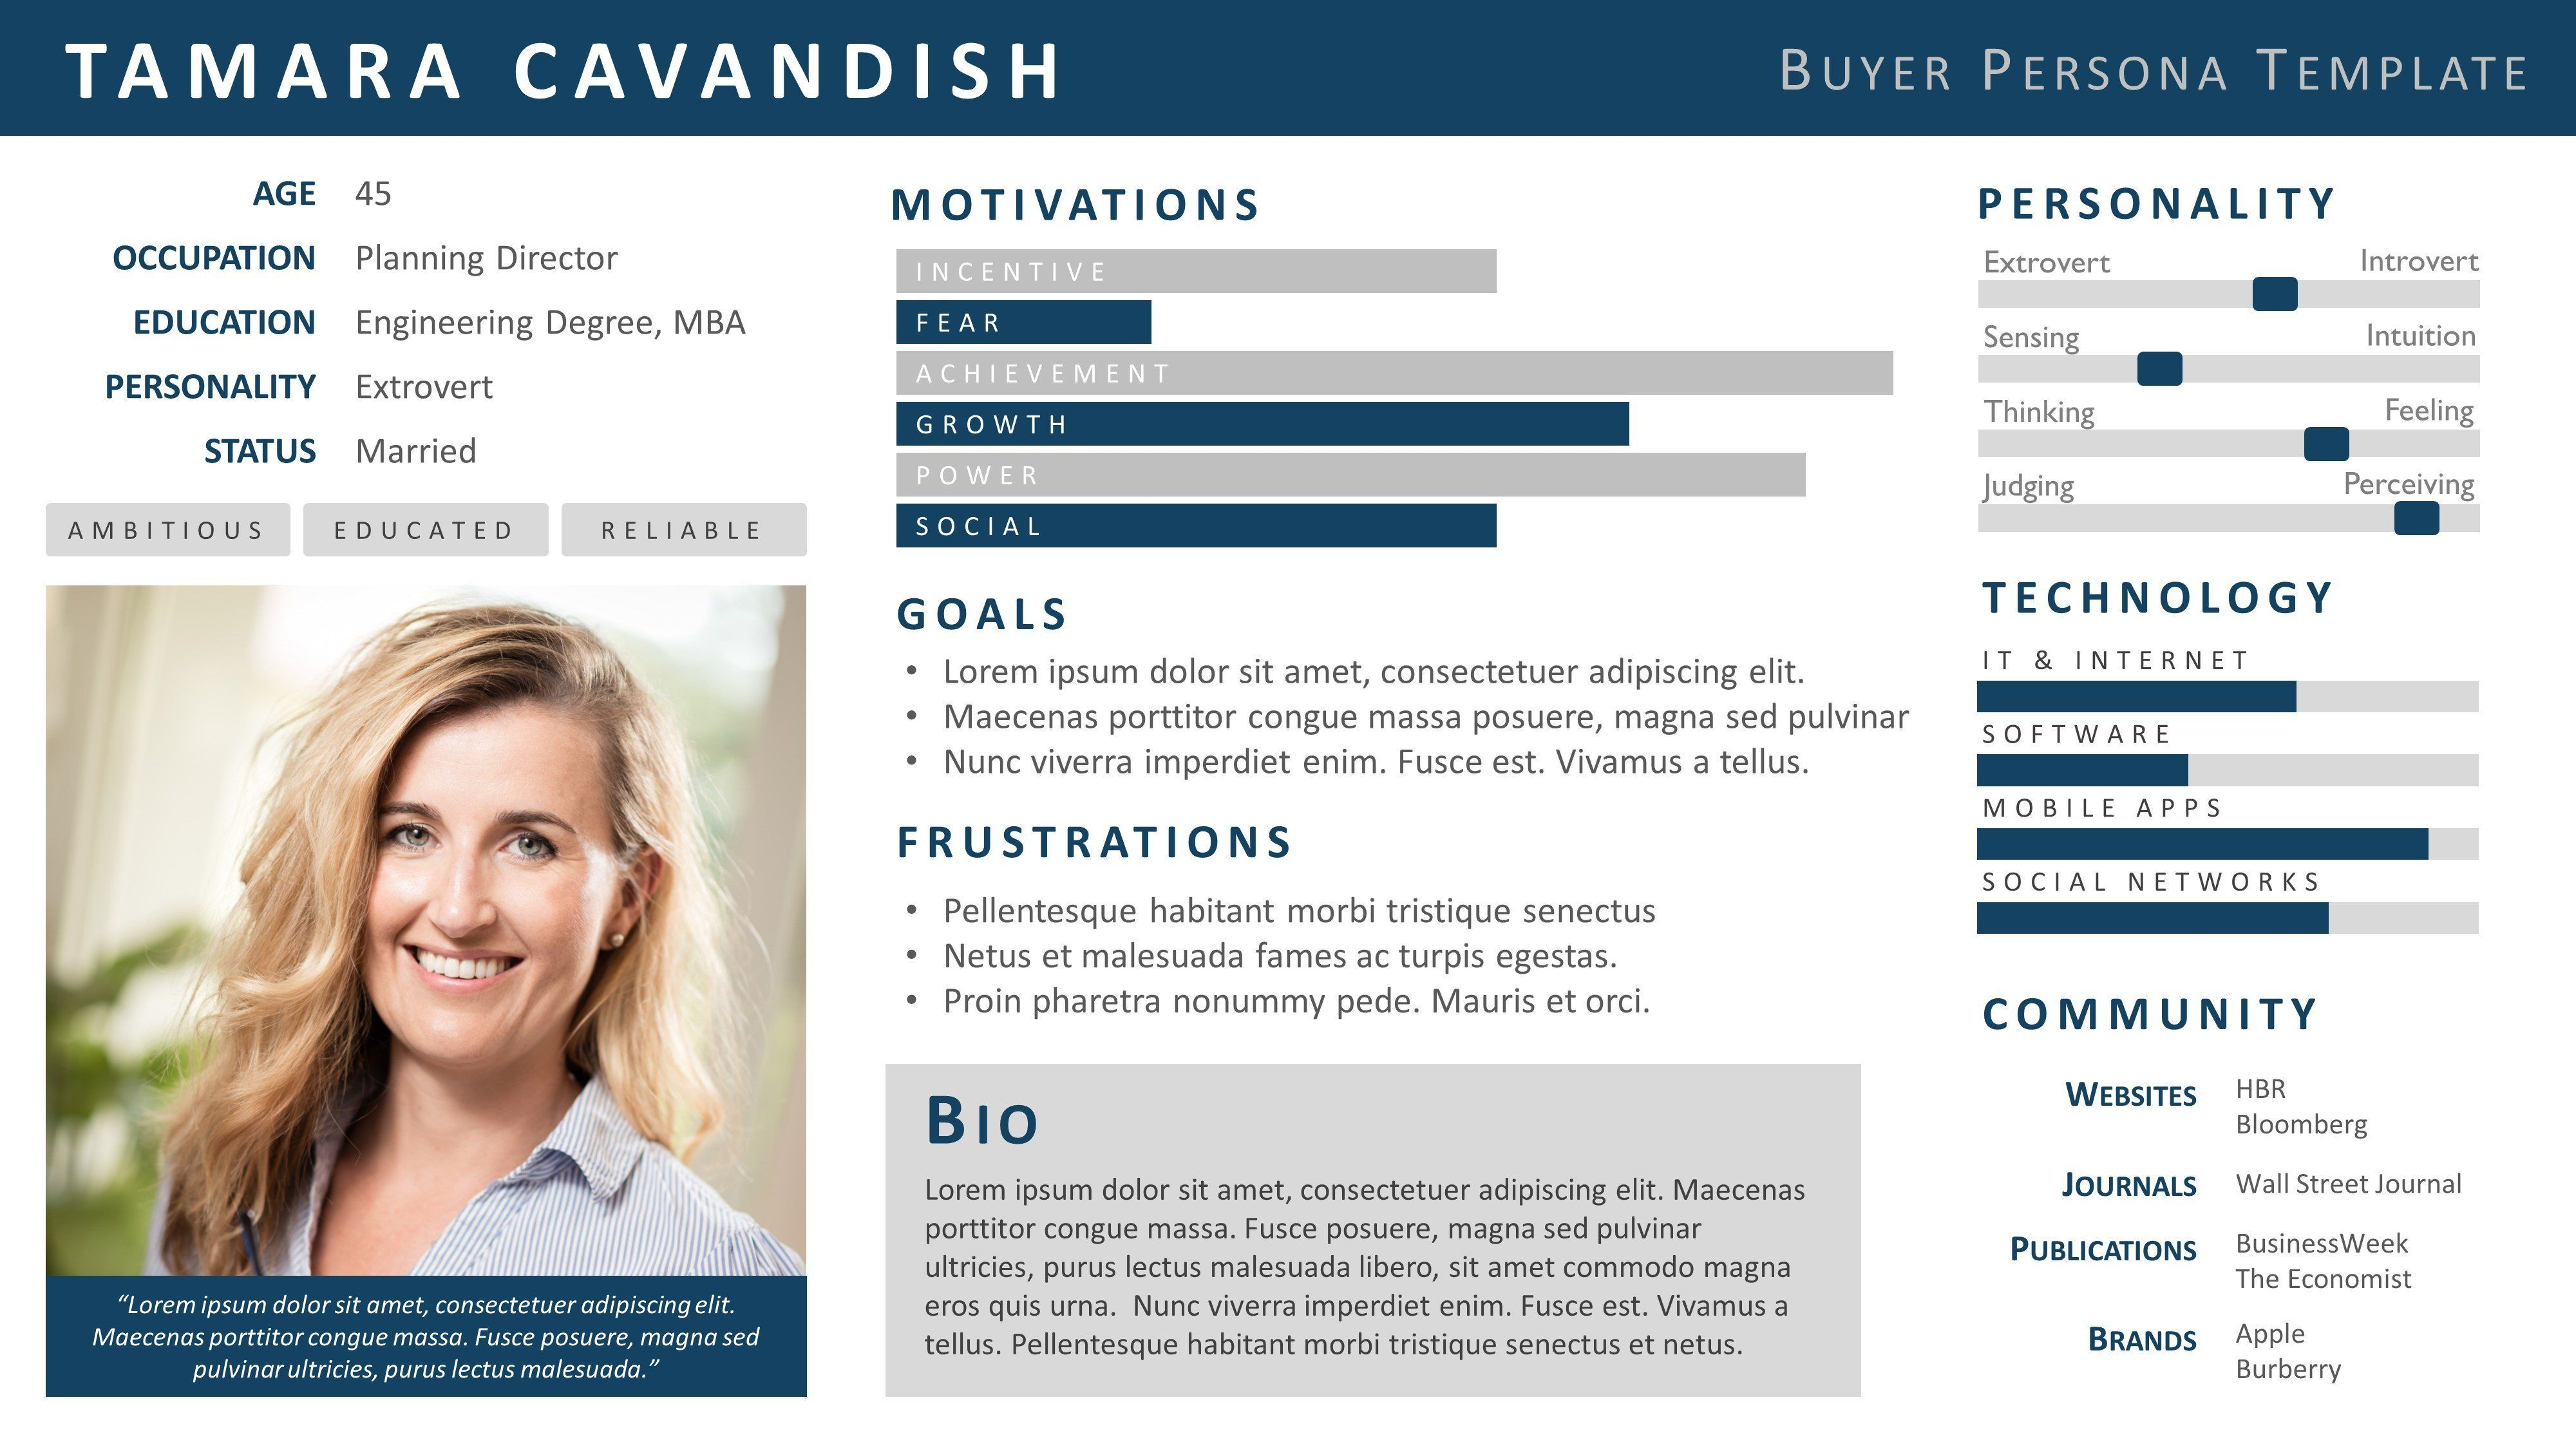 Example of a buyer persona template